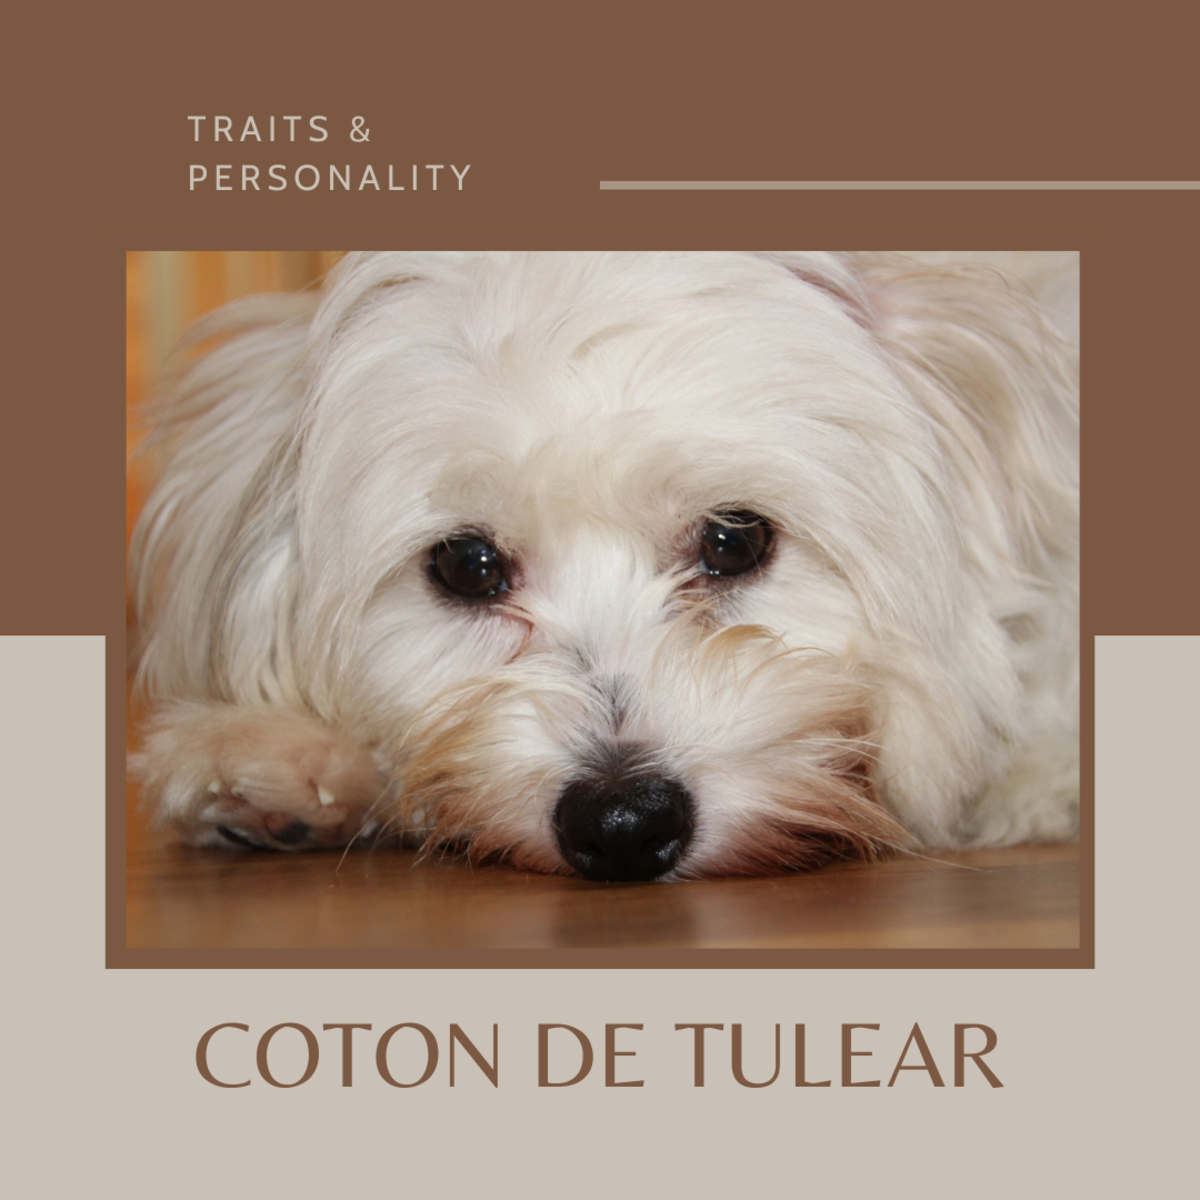 This article will provide information on the intelligence, temperament, and personality of the Coton de Tulear breed of dogs.